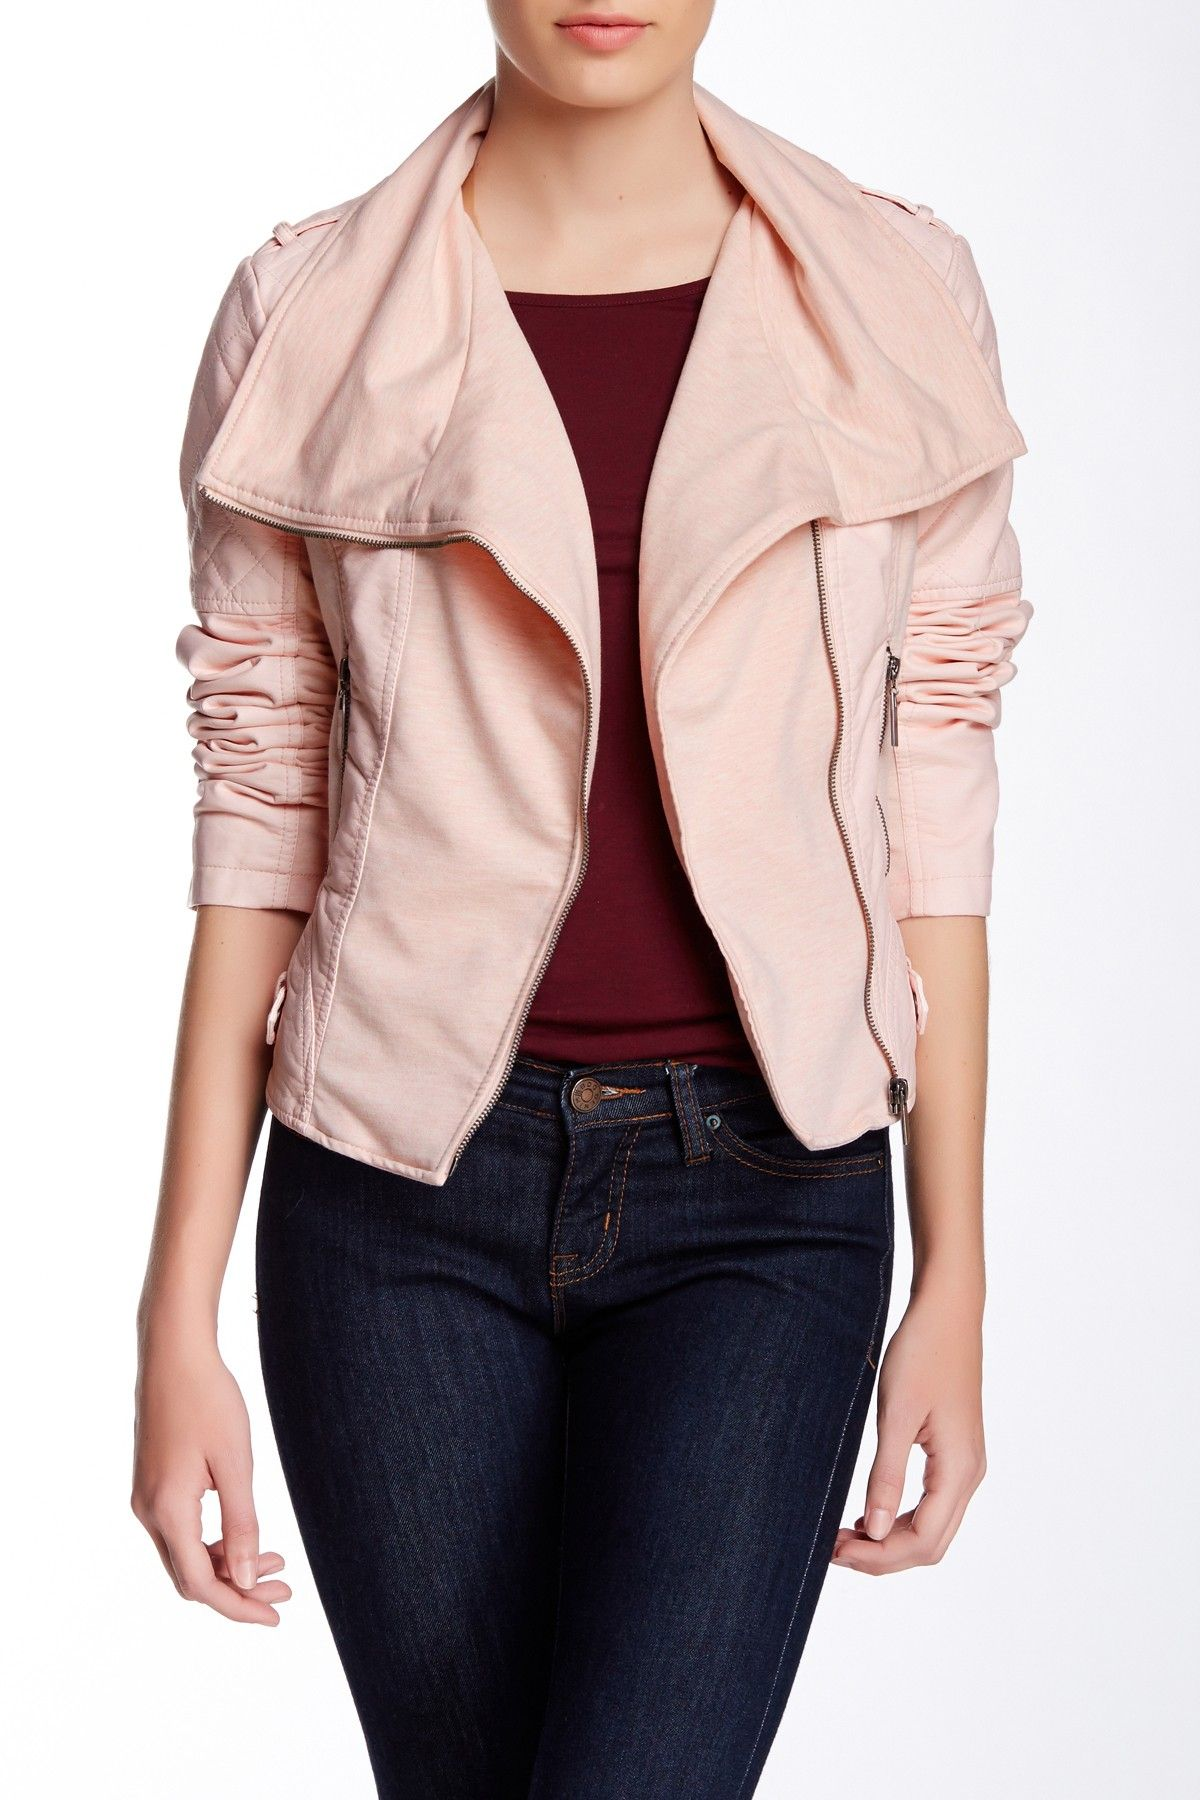 Leather jacket nordstrom rack - Bnci By Blanc Noir Quilted Pleated Cascade Moto Jacket Waterfall Jacketmoto Jacketnordstrom Rackwaterfallsblushes